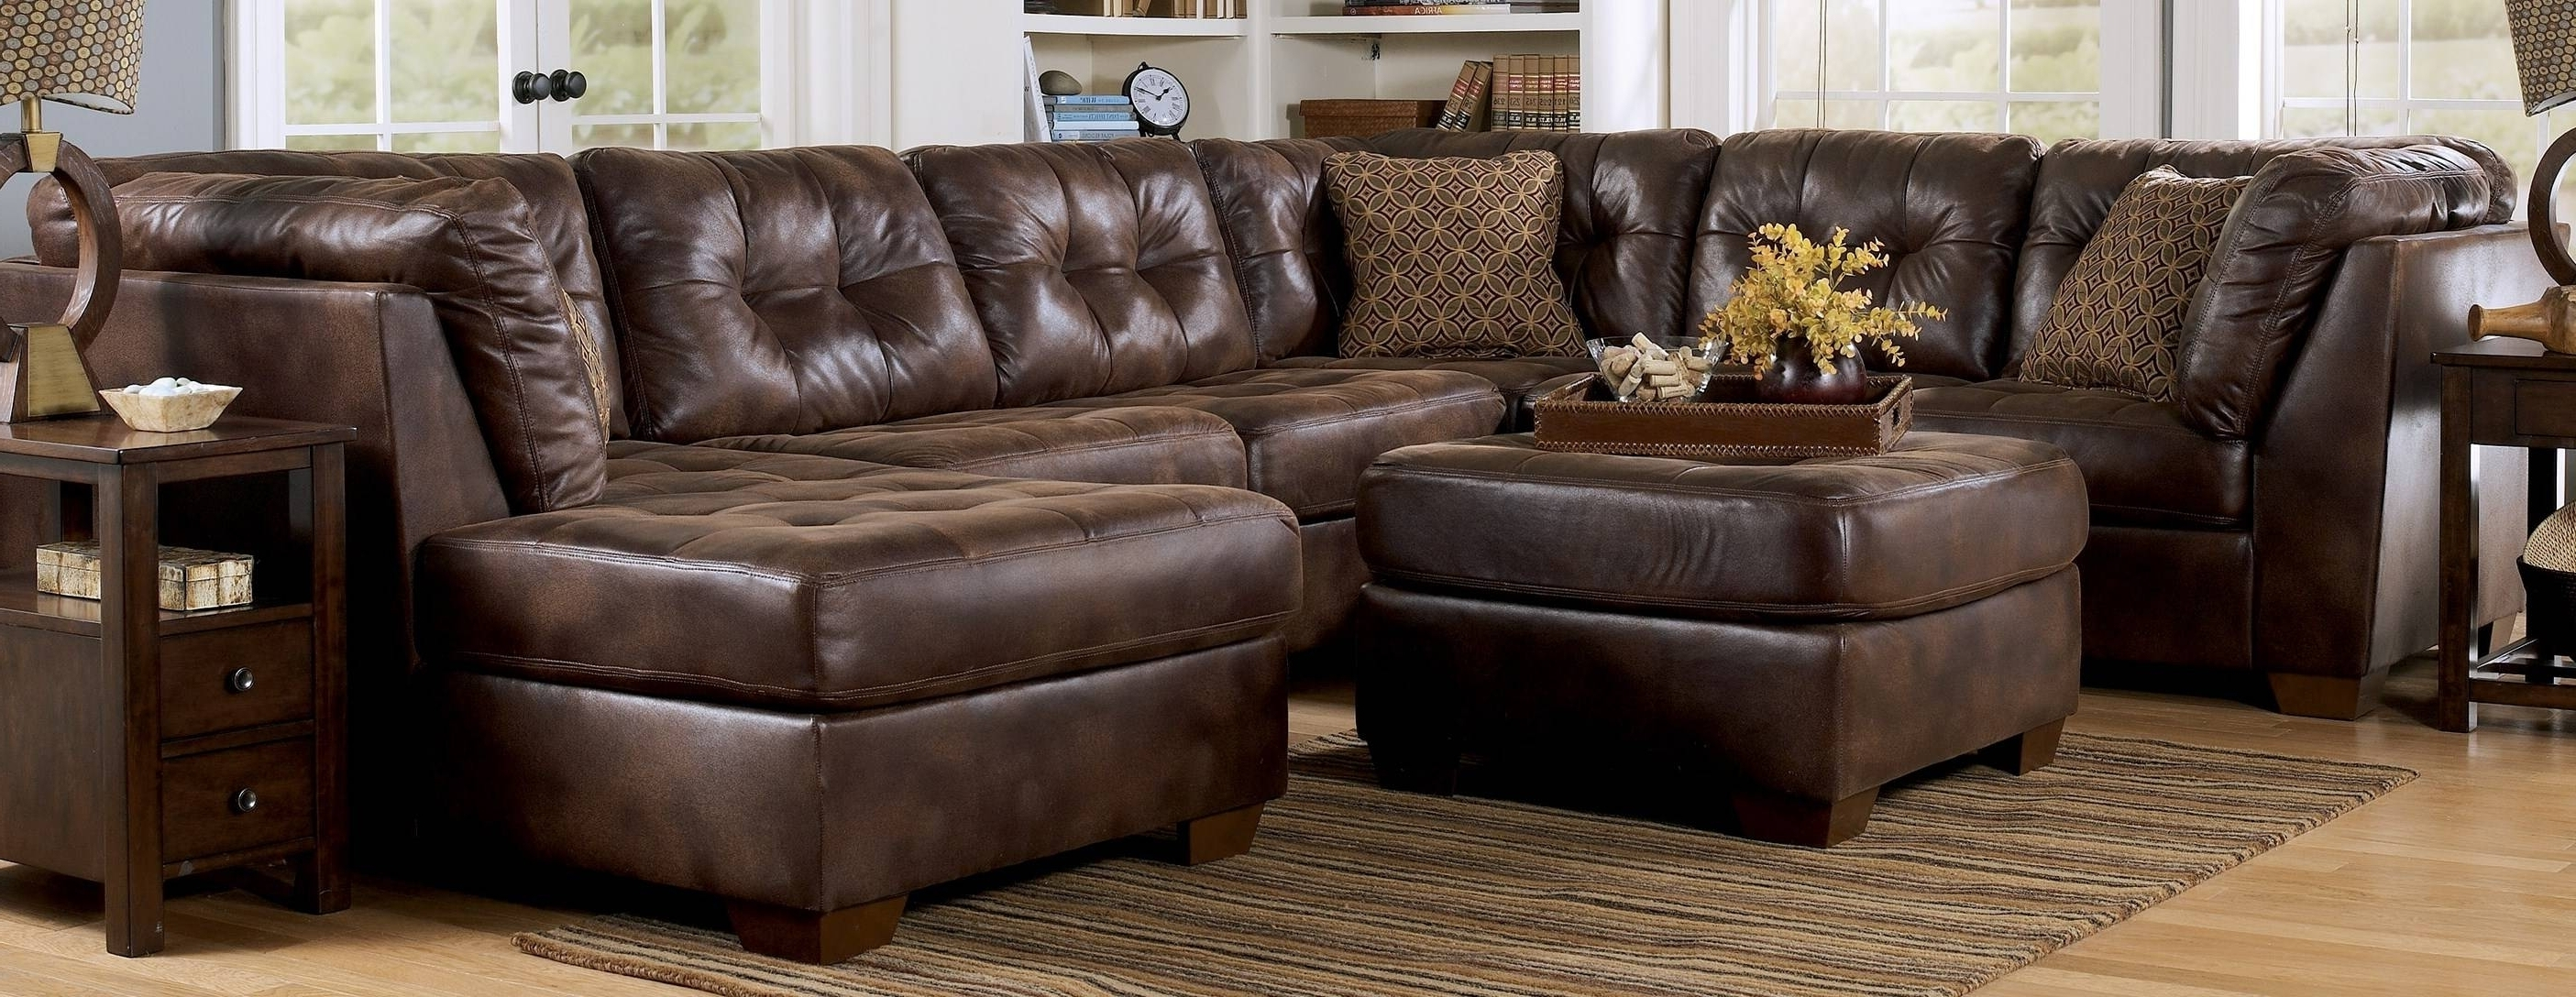 Brilliant Sectional Sofas Cincinnati – Buildsimplehome Intended For Most Recently Released Cincinnati Sectional Sofas (View 1 of 15)